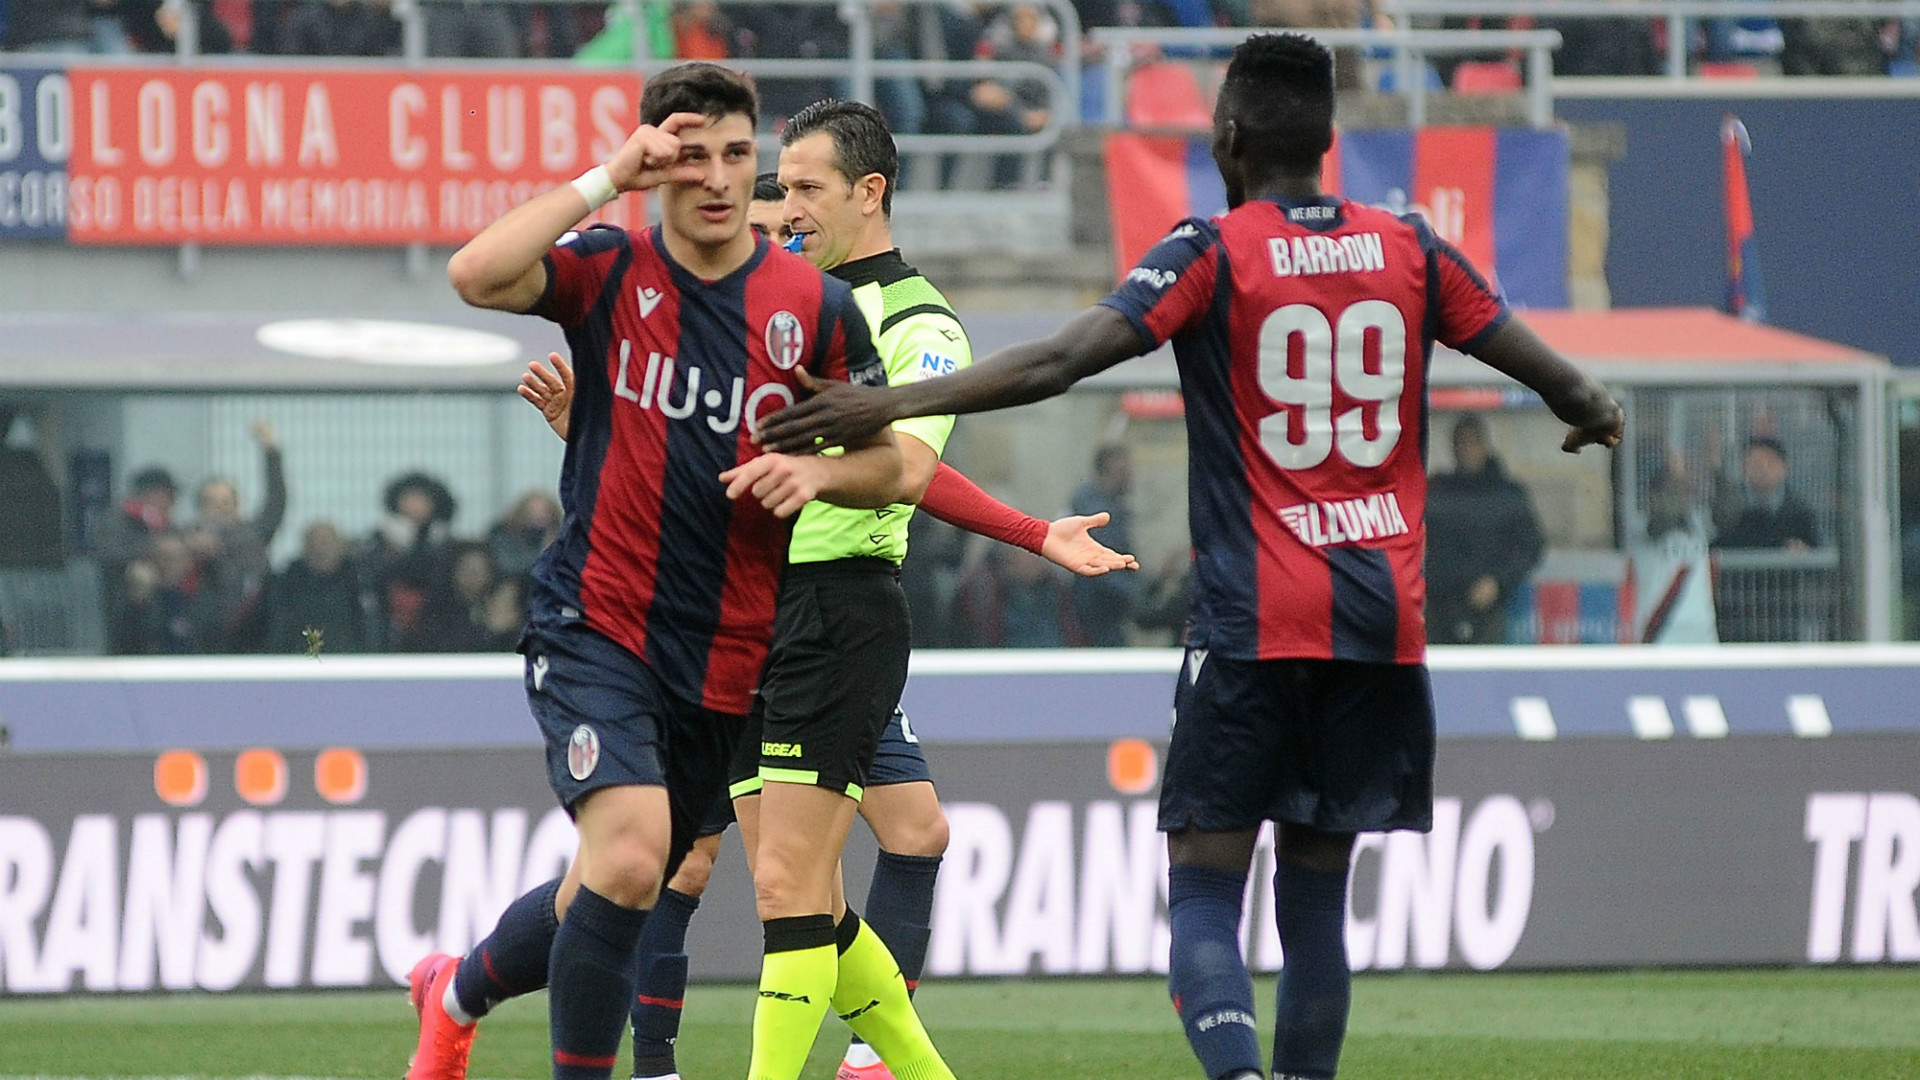 Barrow double inspires Bologna past Gervinho's Parma